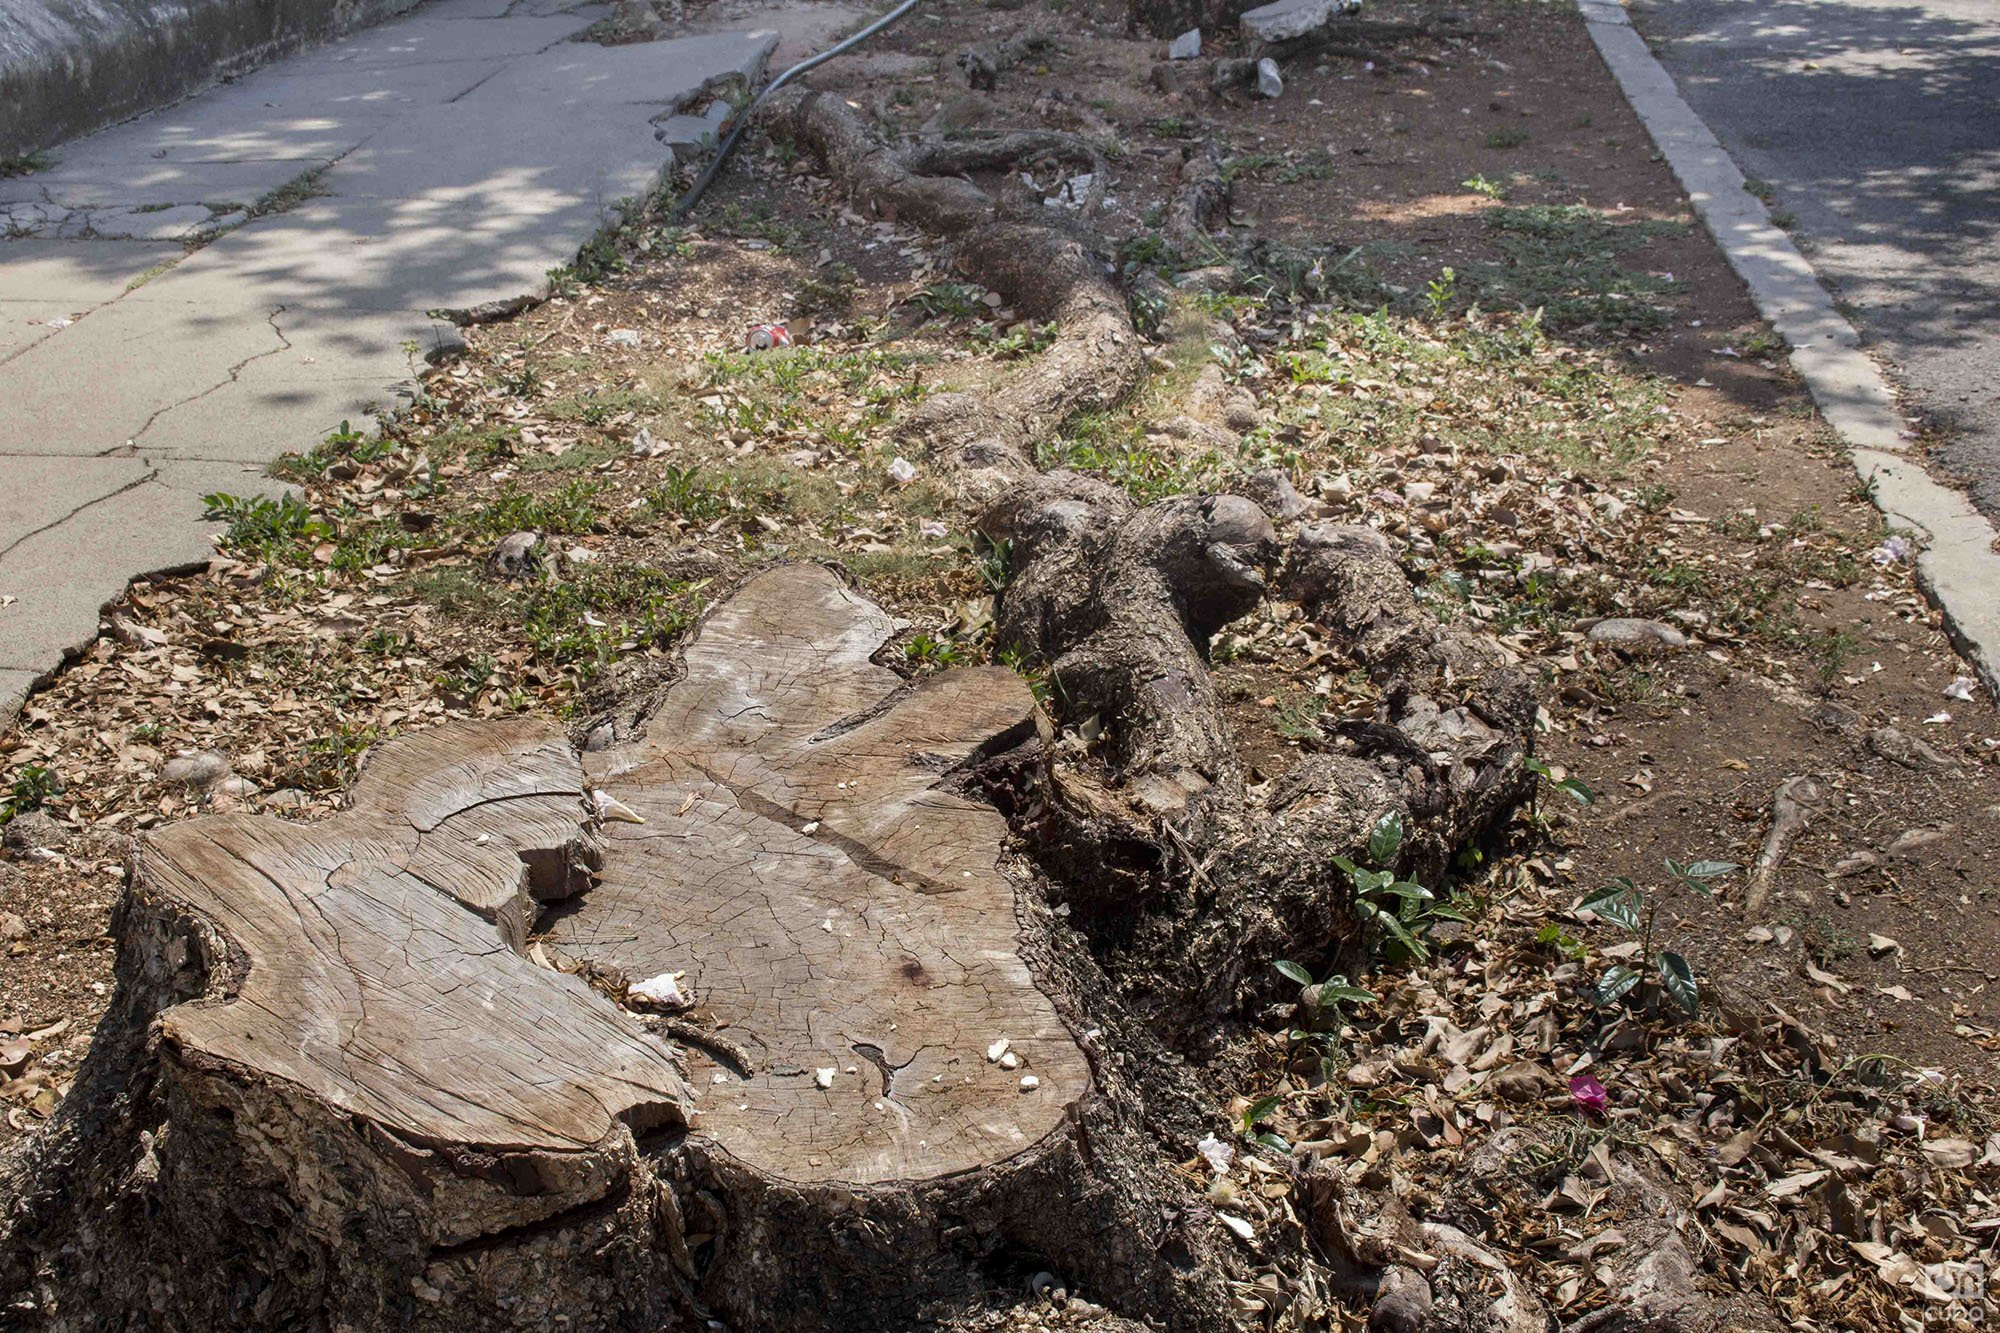 Tree stump located near the corner of 15 and Paseo, reported by the Habana Verde Facebook group. Photo: Yoel Rodríguez